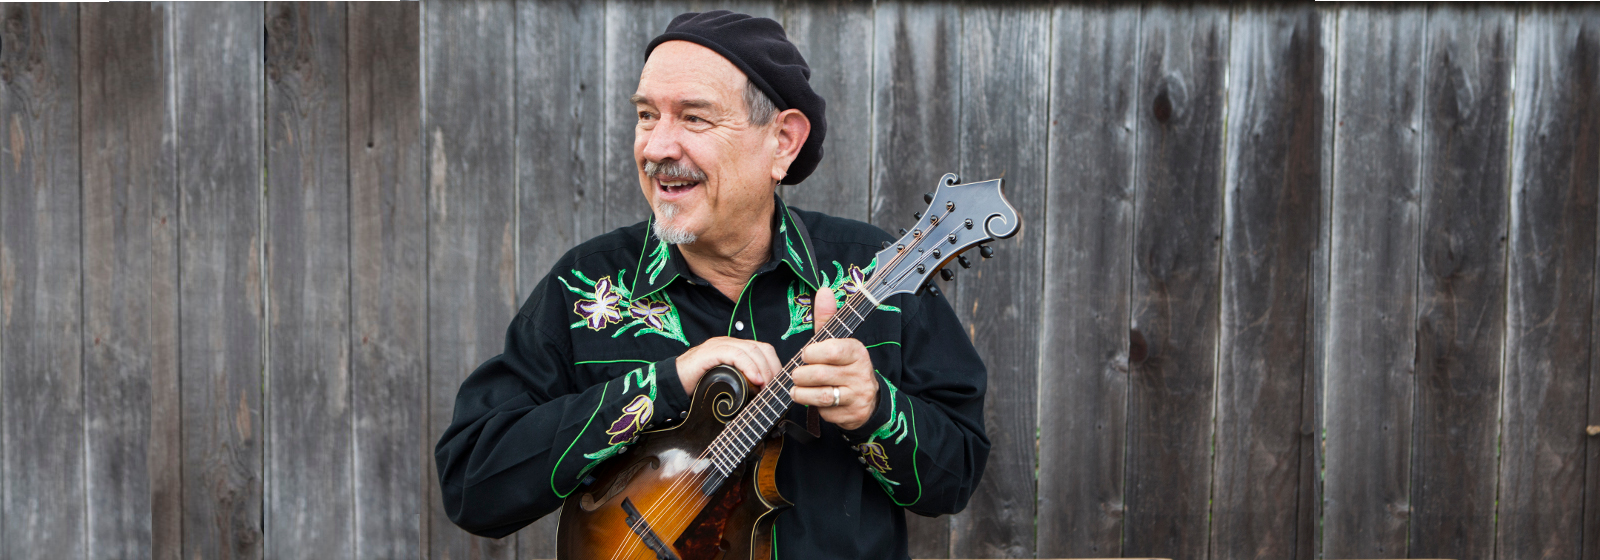 Paul Kotapish - Mandolin & Guitar | Credit: Anne Hamersky